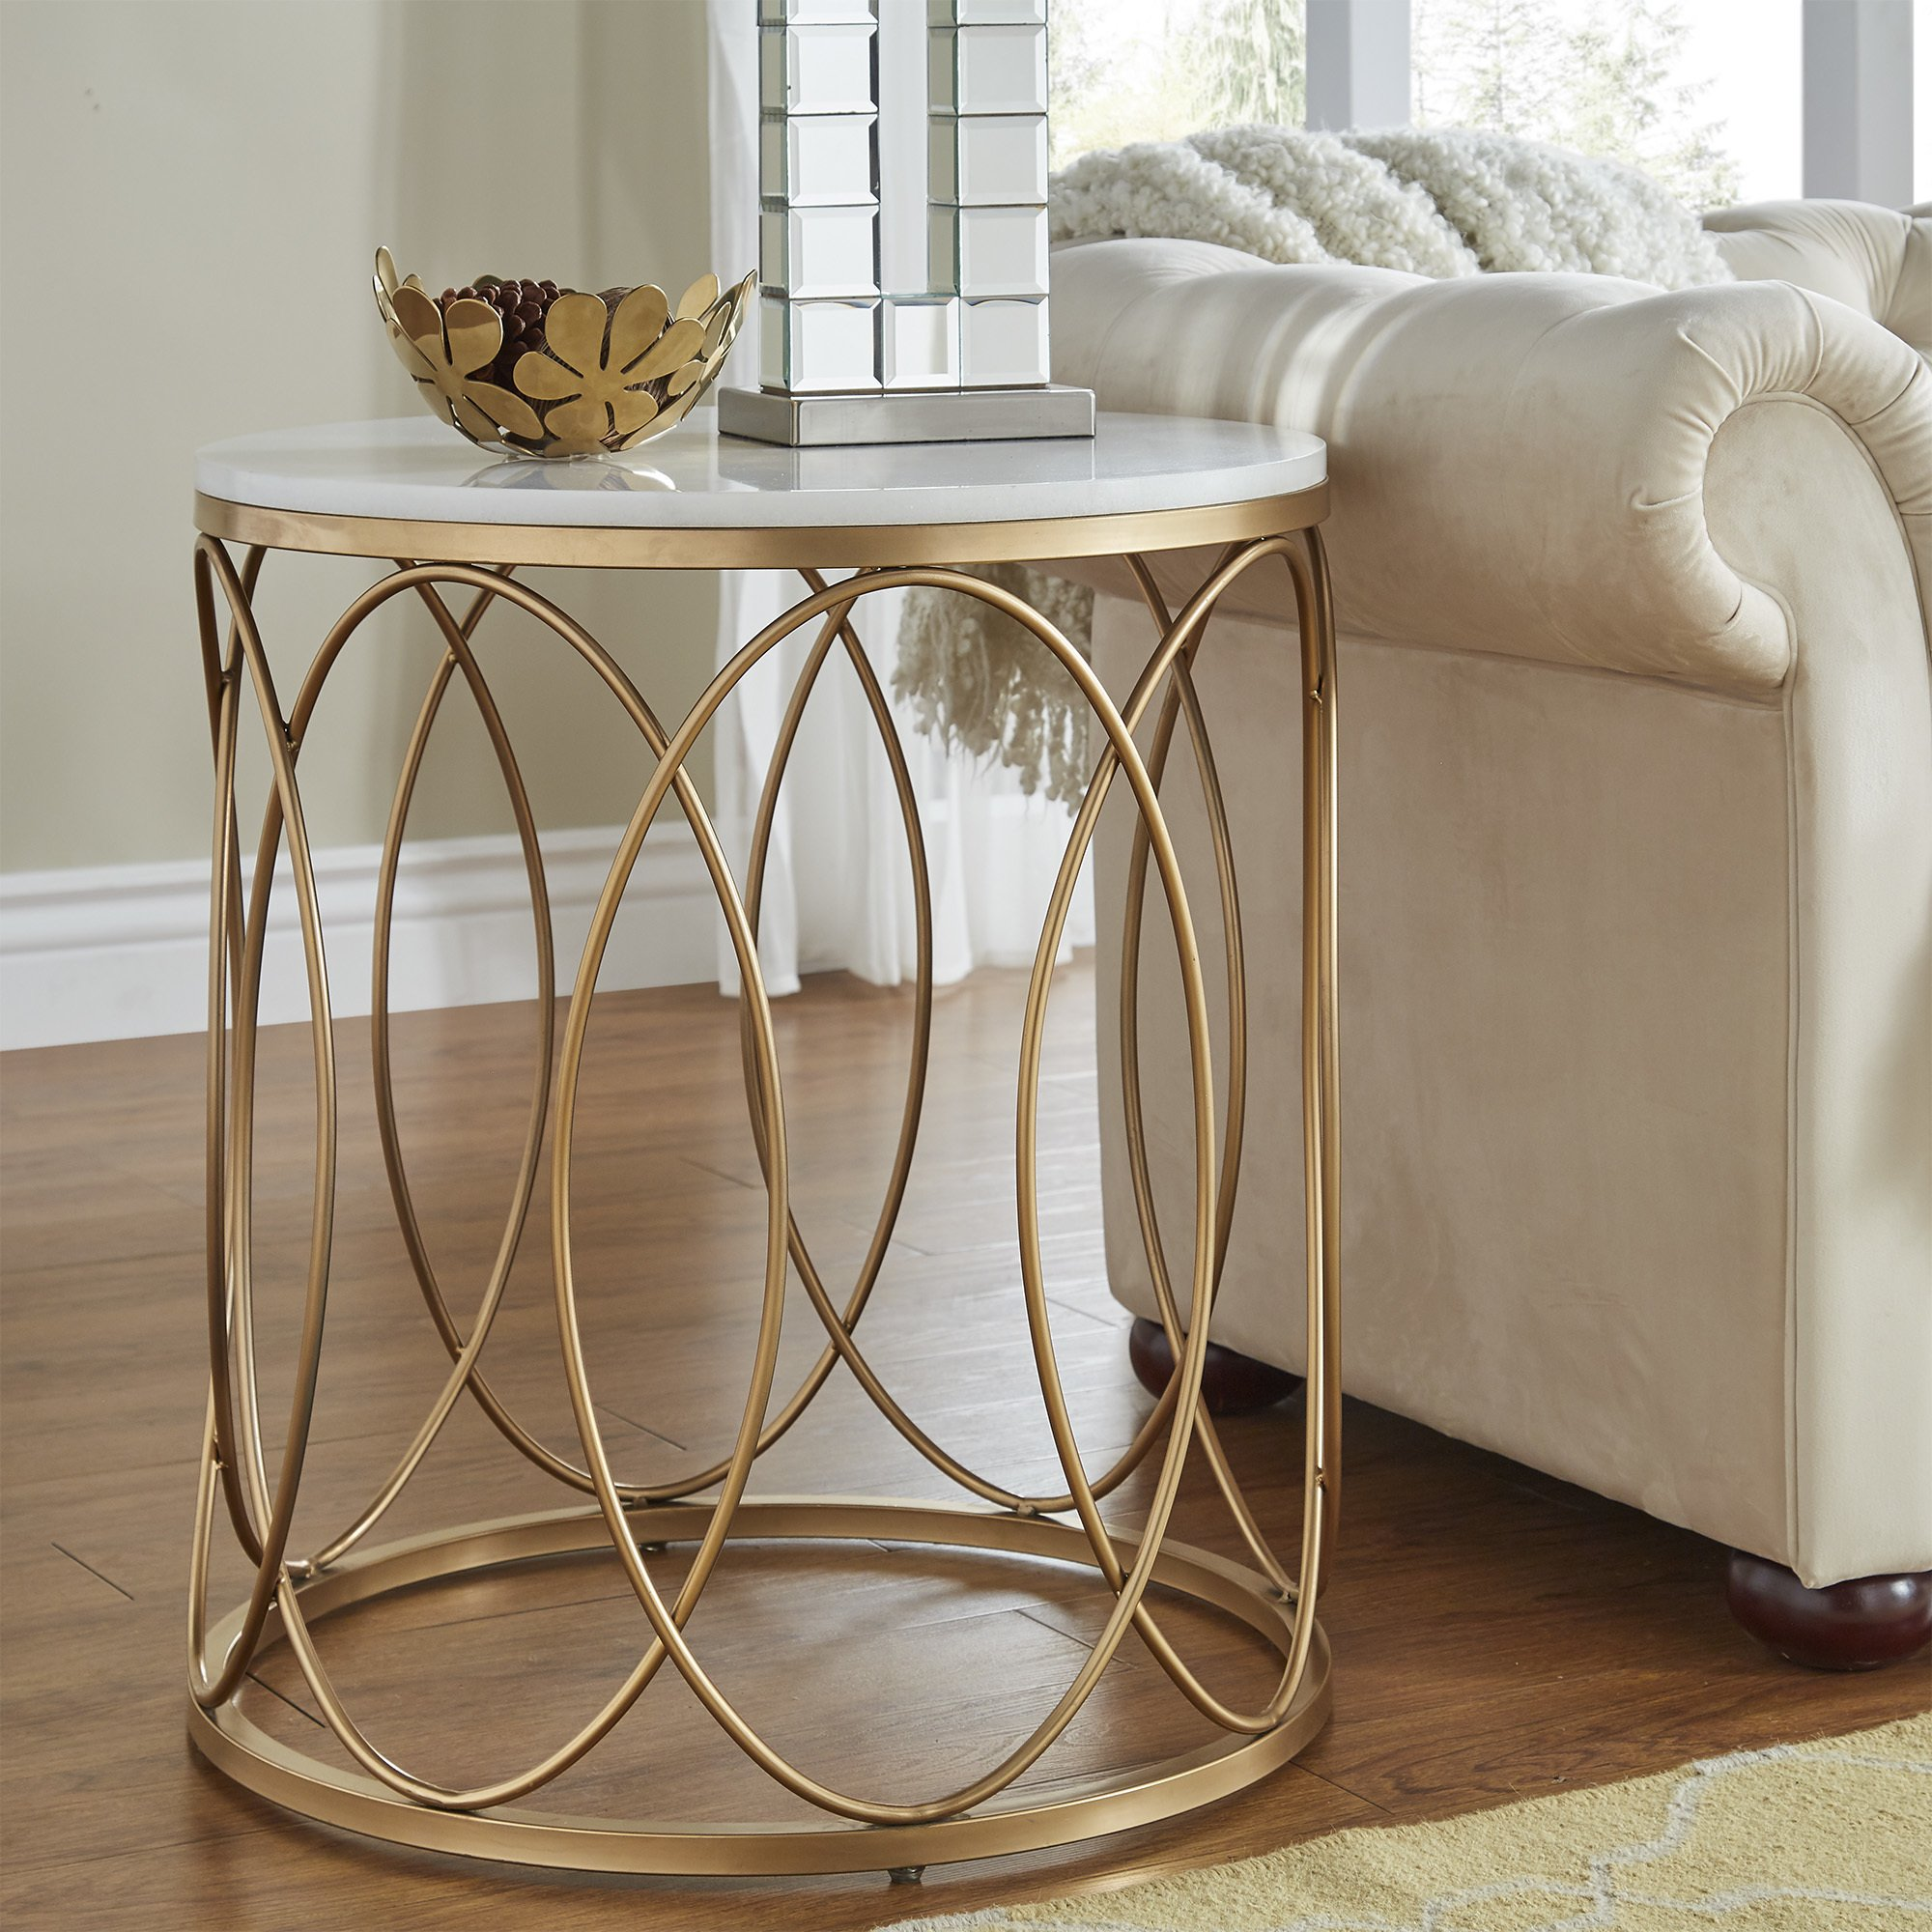 lynn round gold end table with marble top inspire bold accent dining free shipping today side cloth small nautical lamps tile patio winsome wood home goods sets pine tables living